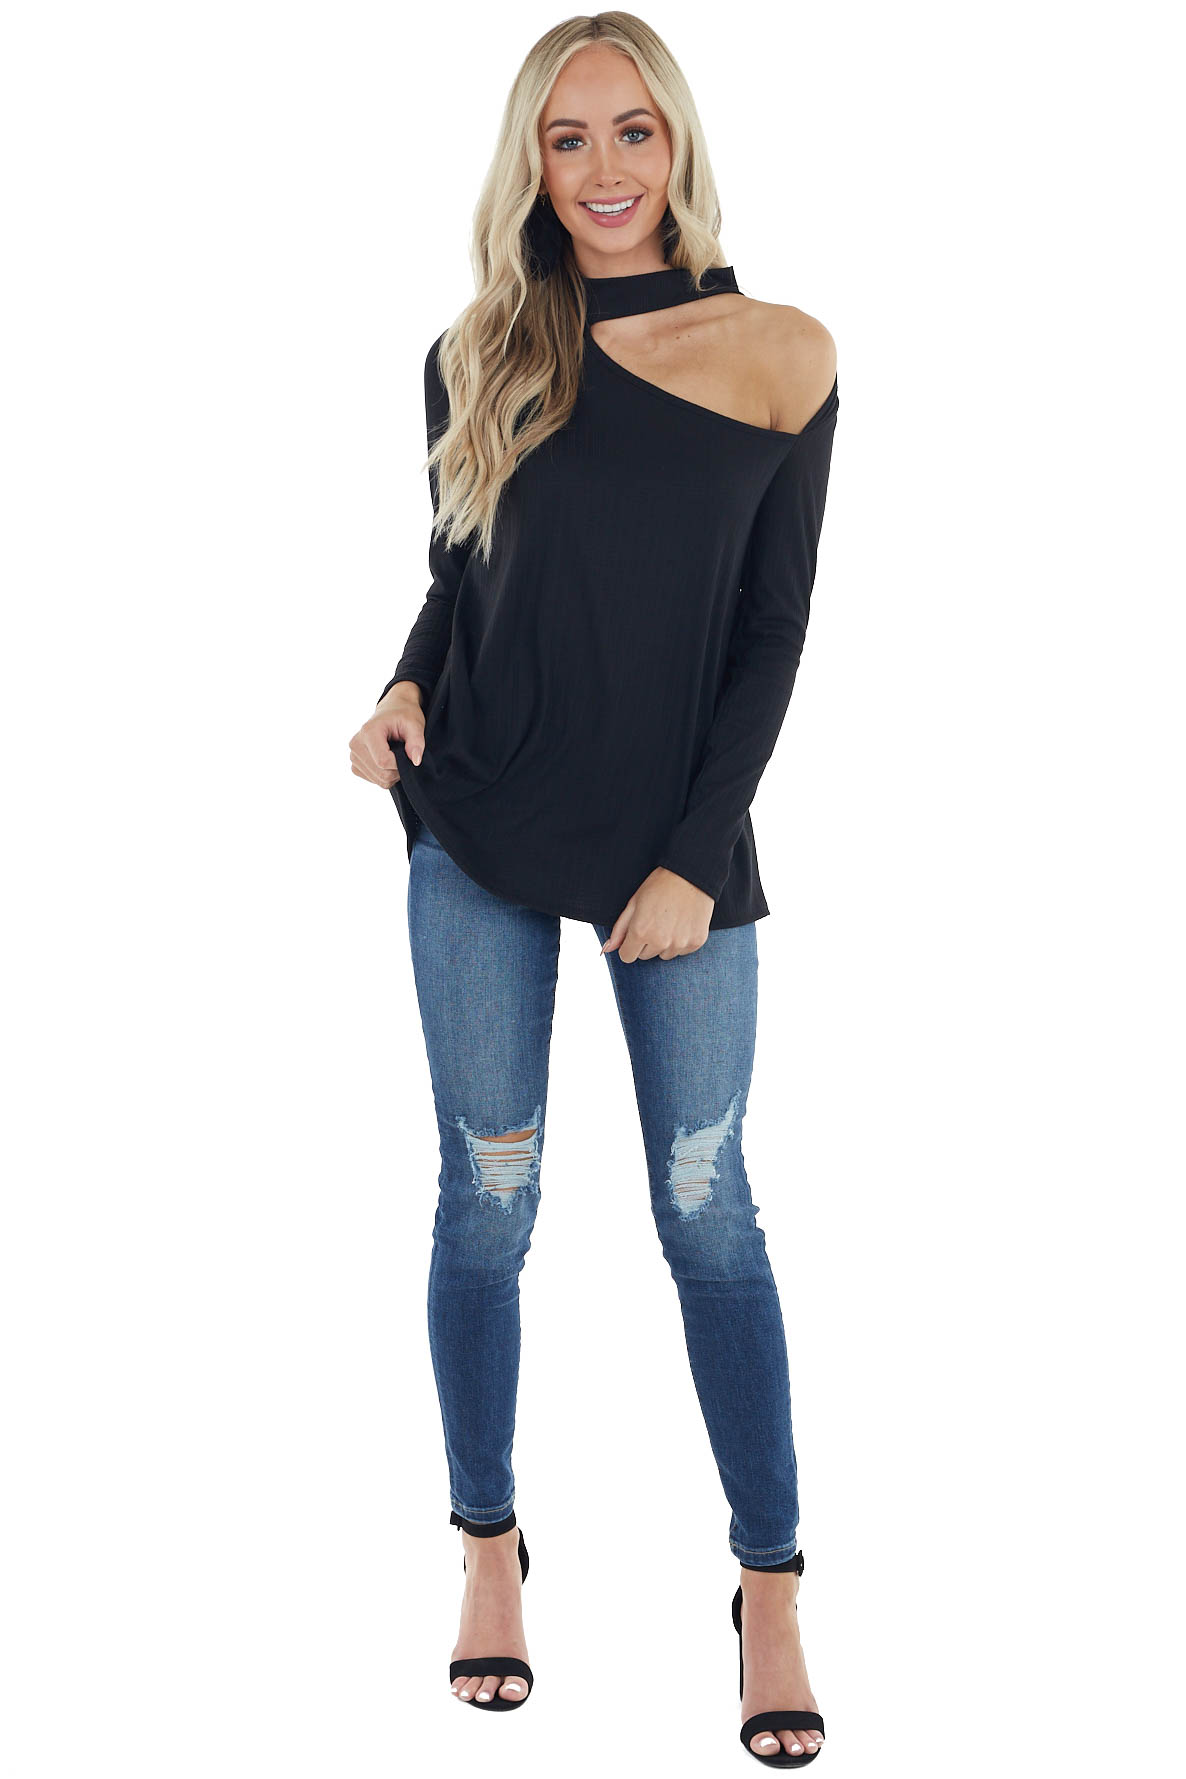 Black Long Sleeve Stretchy Knit Top with Cut Out Detail